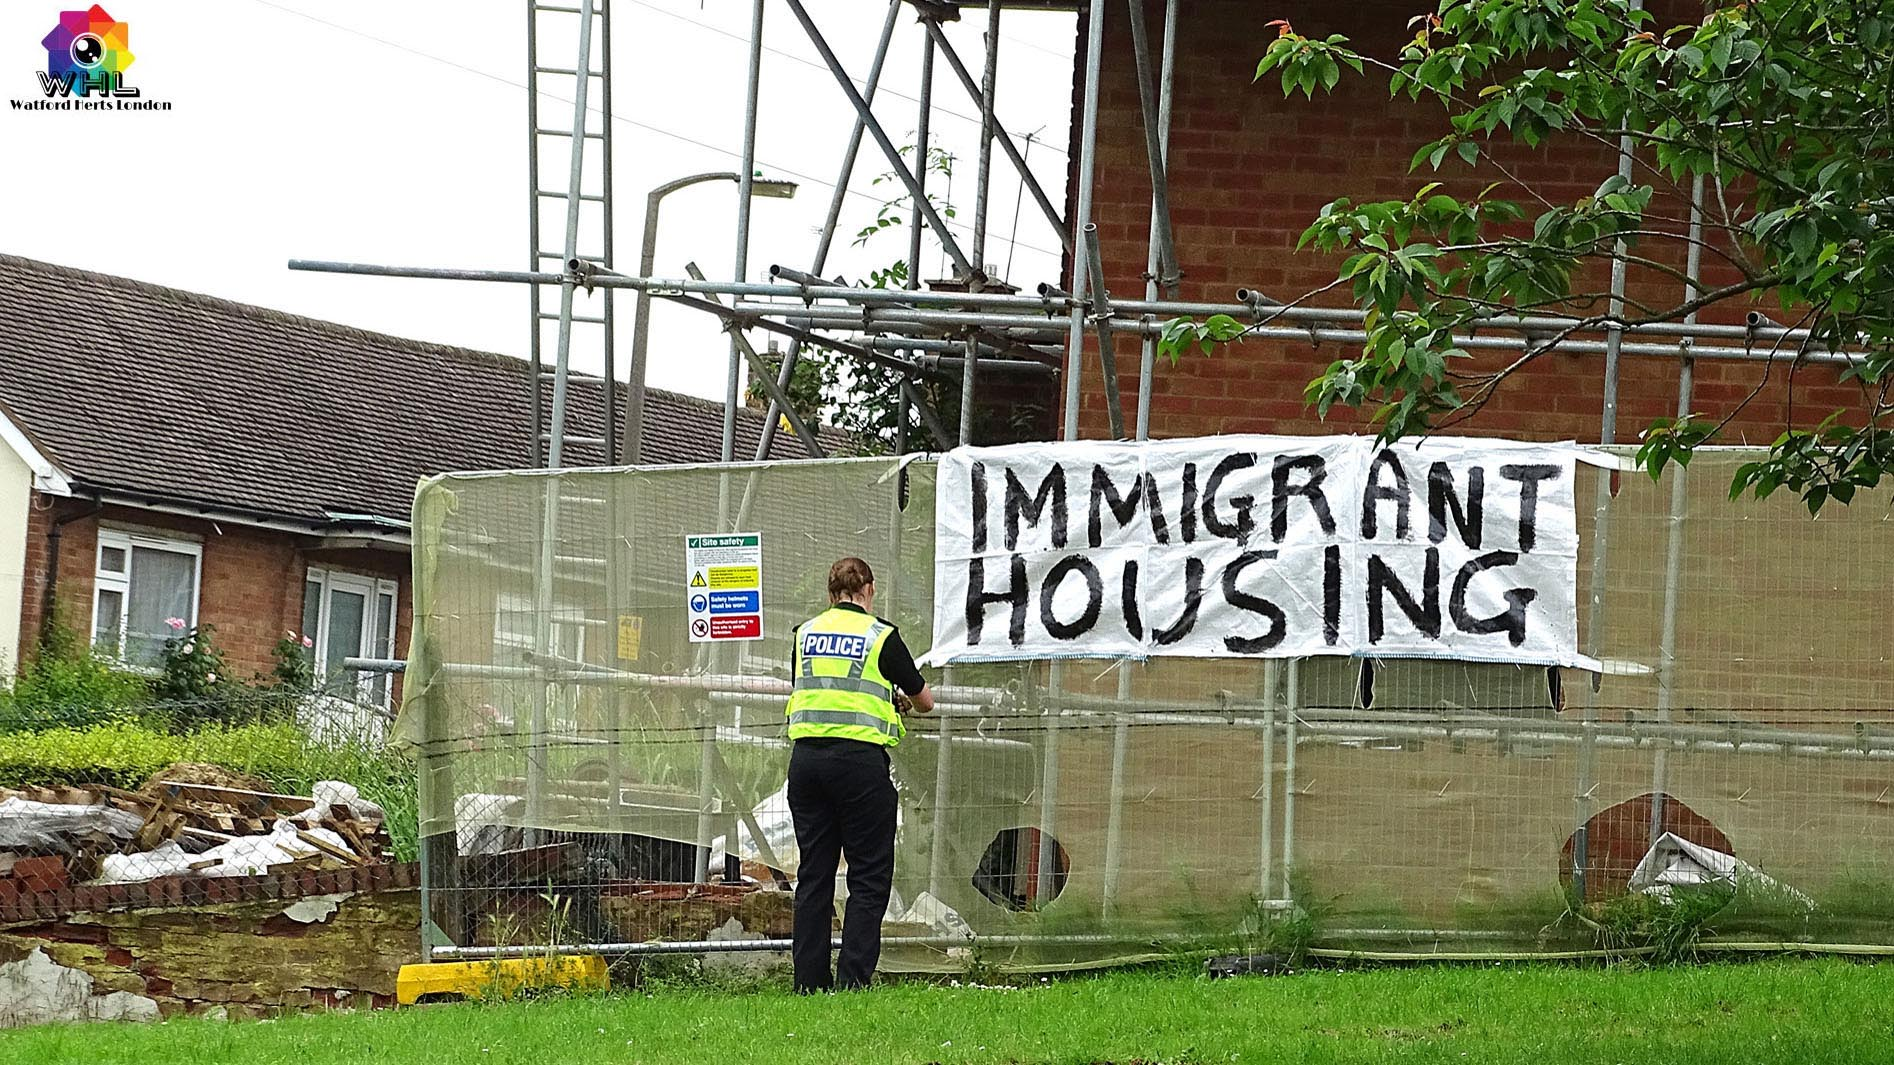 Police Remove Immigrant Housing Graffiti Banner on House in Meriden Watford 2016